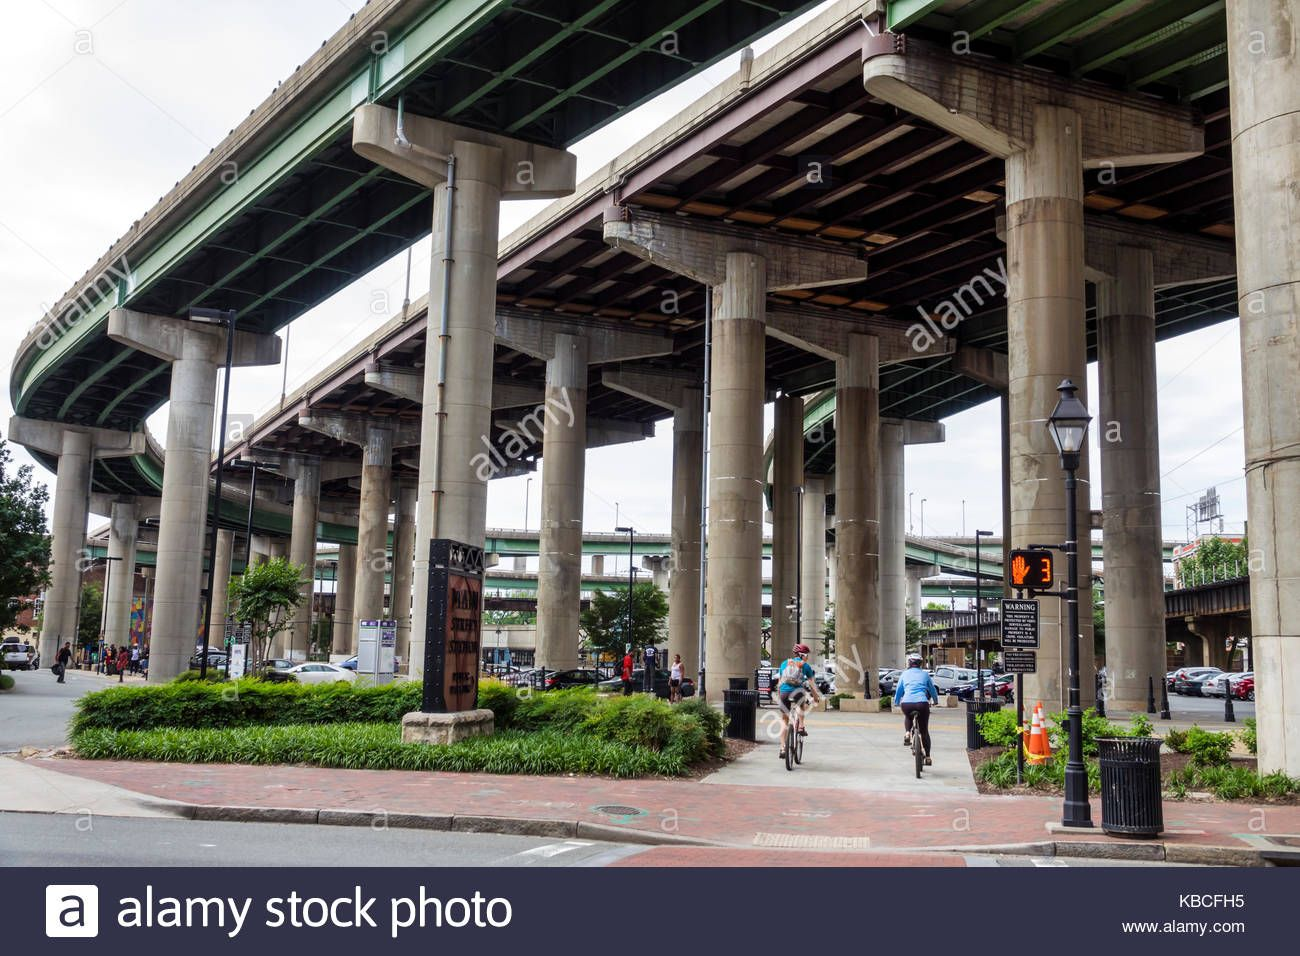 richmond-virginia-downtown-interstate-i-95-highway-overpass-flyover-KBCFH5